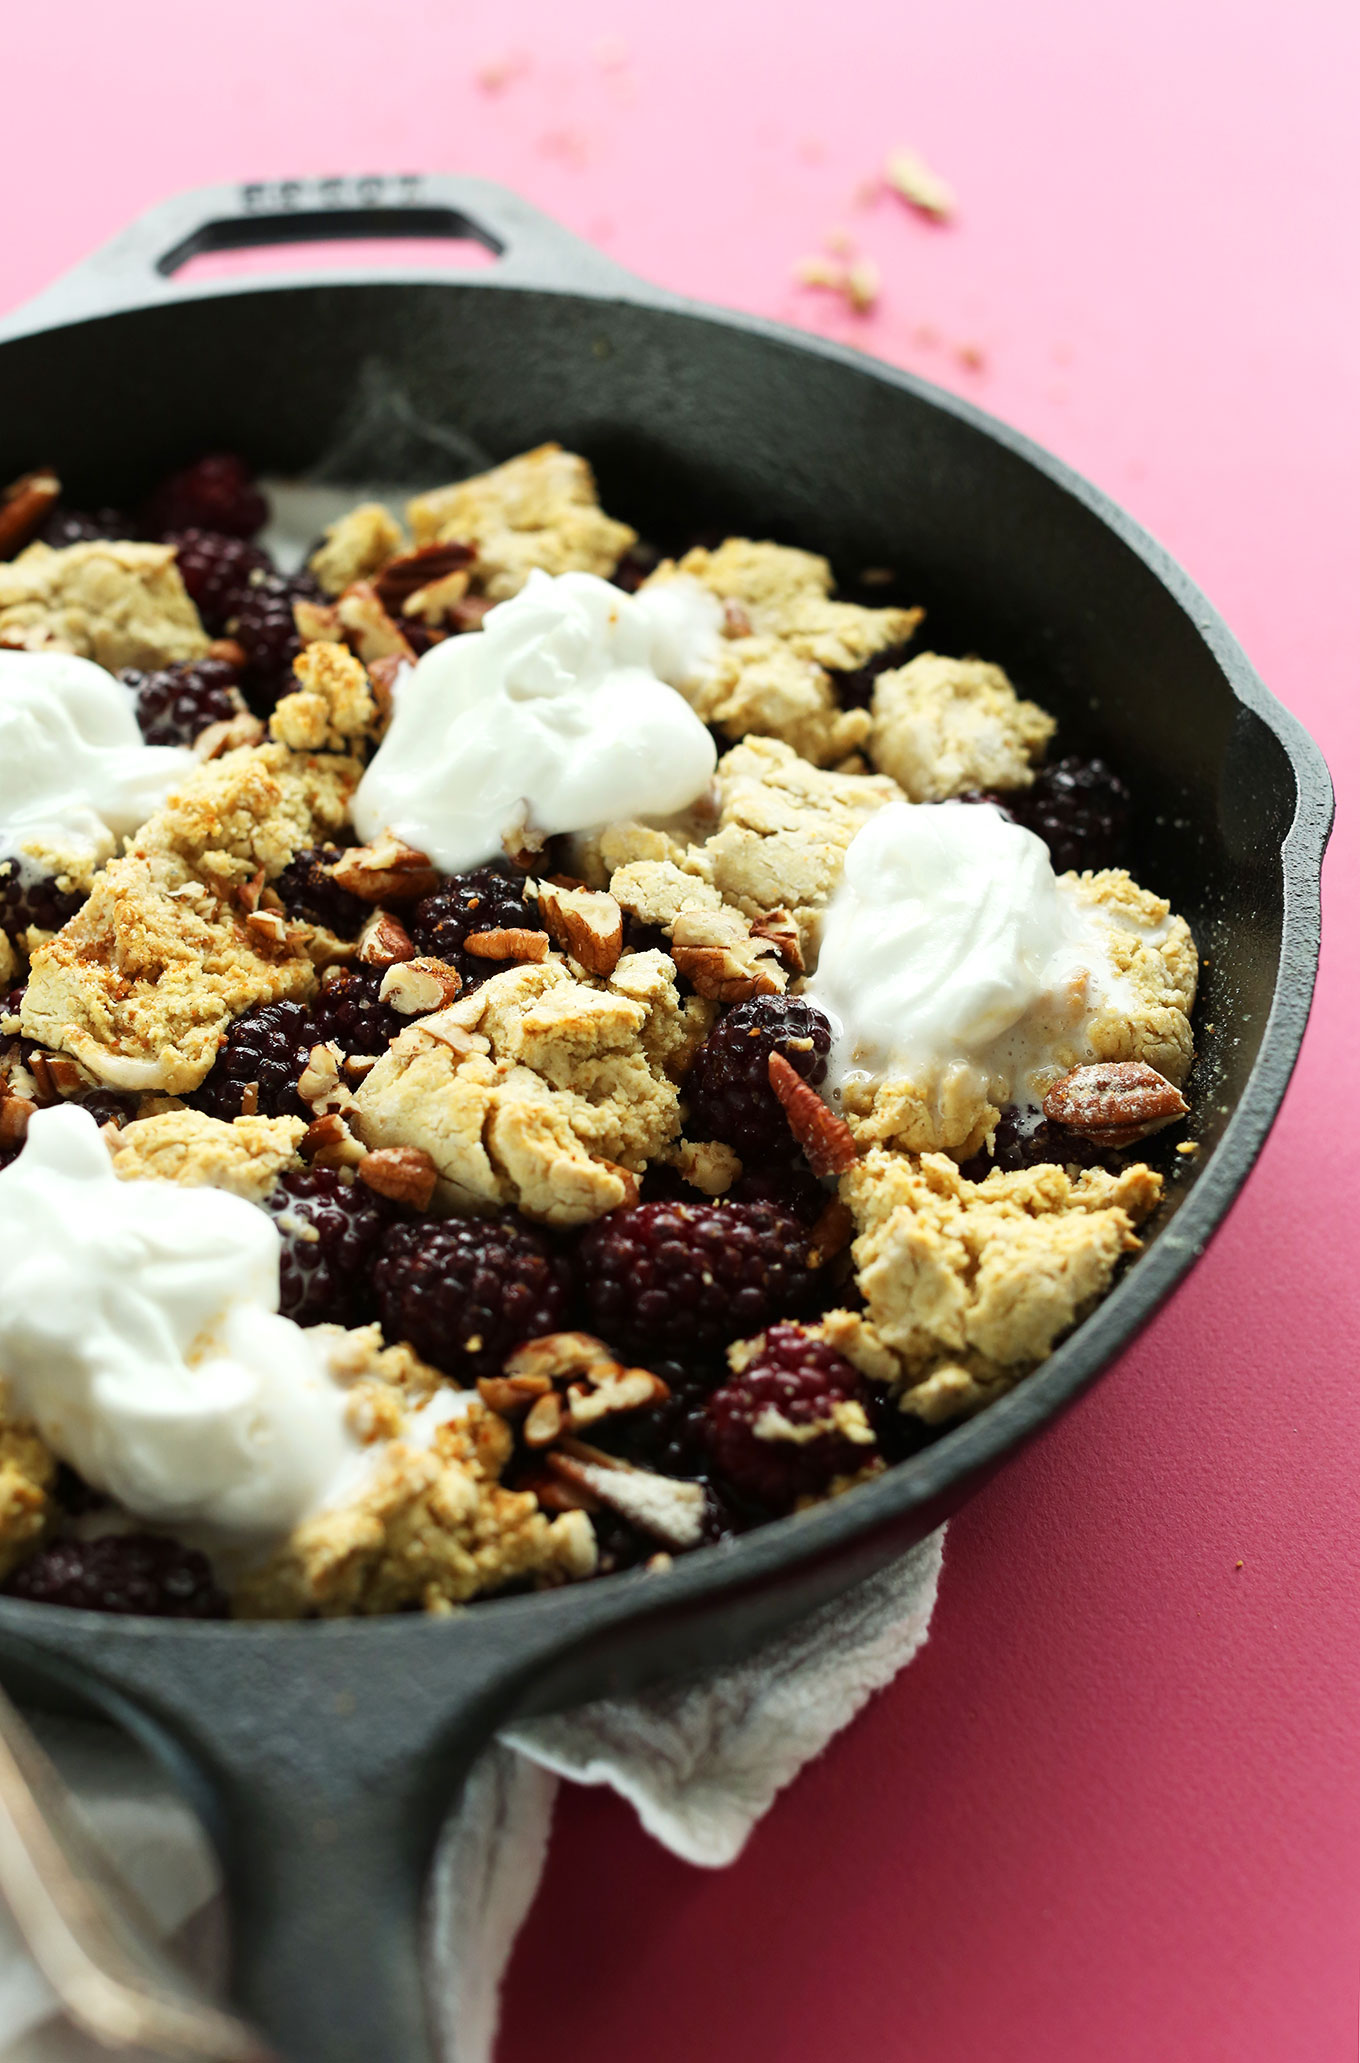 Cast-iron skillet with freshly baked gluten-free vegan Blackberry Cobbler